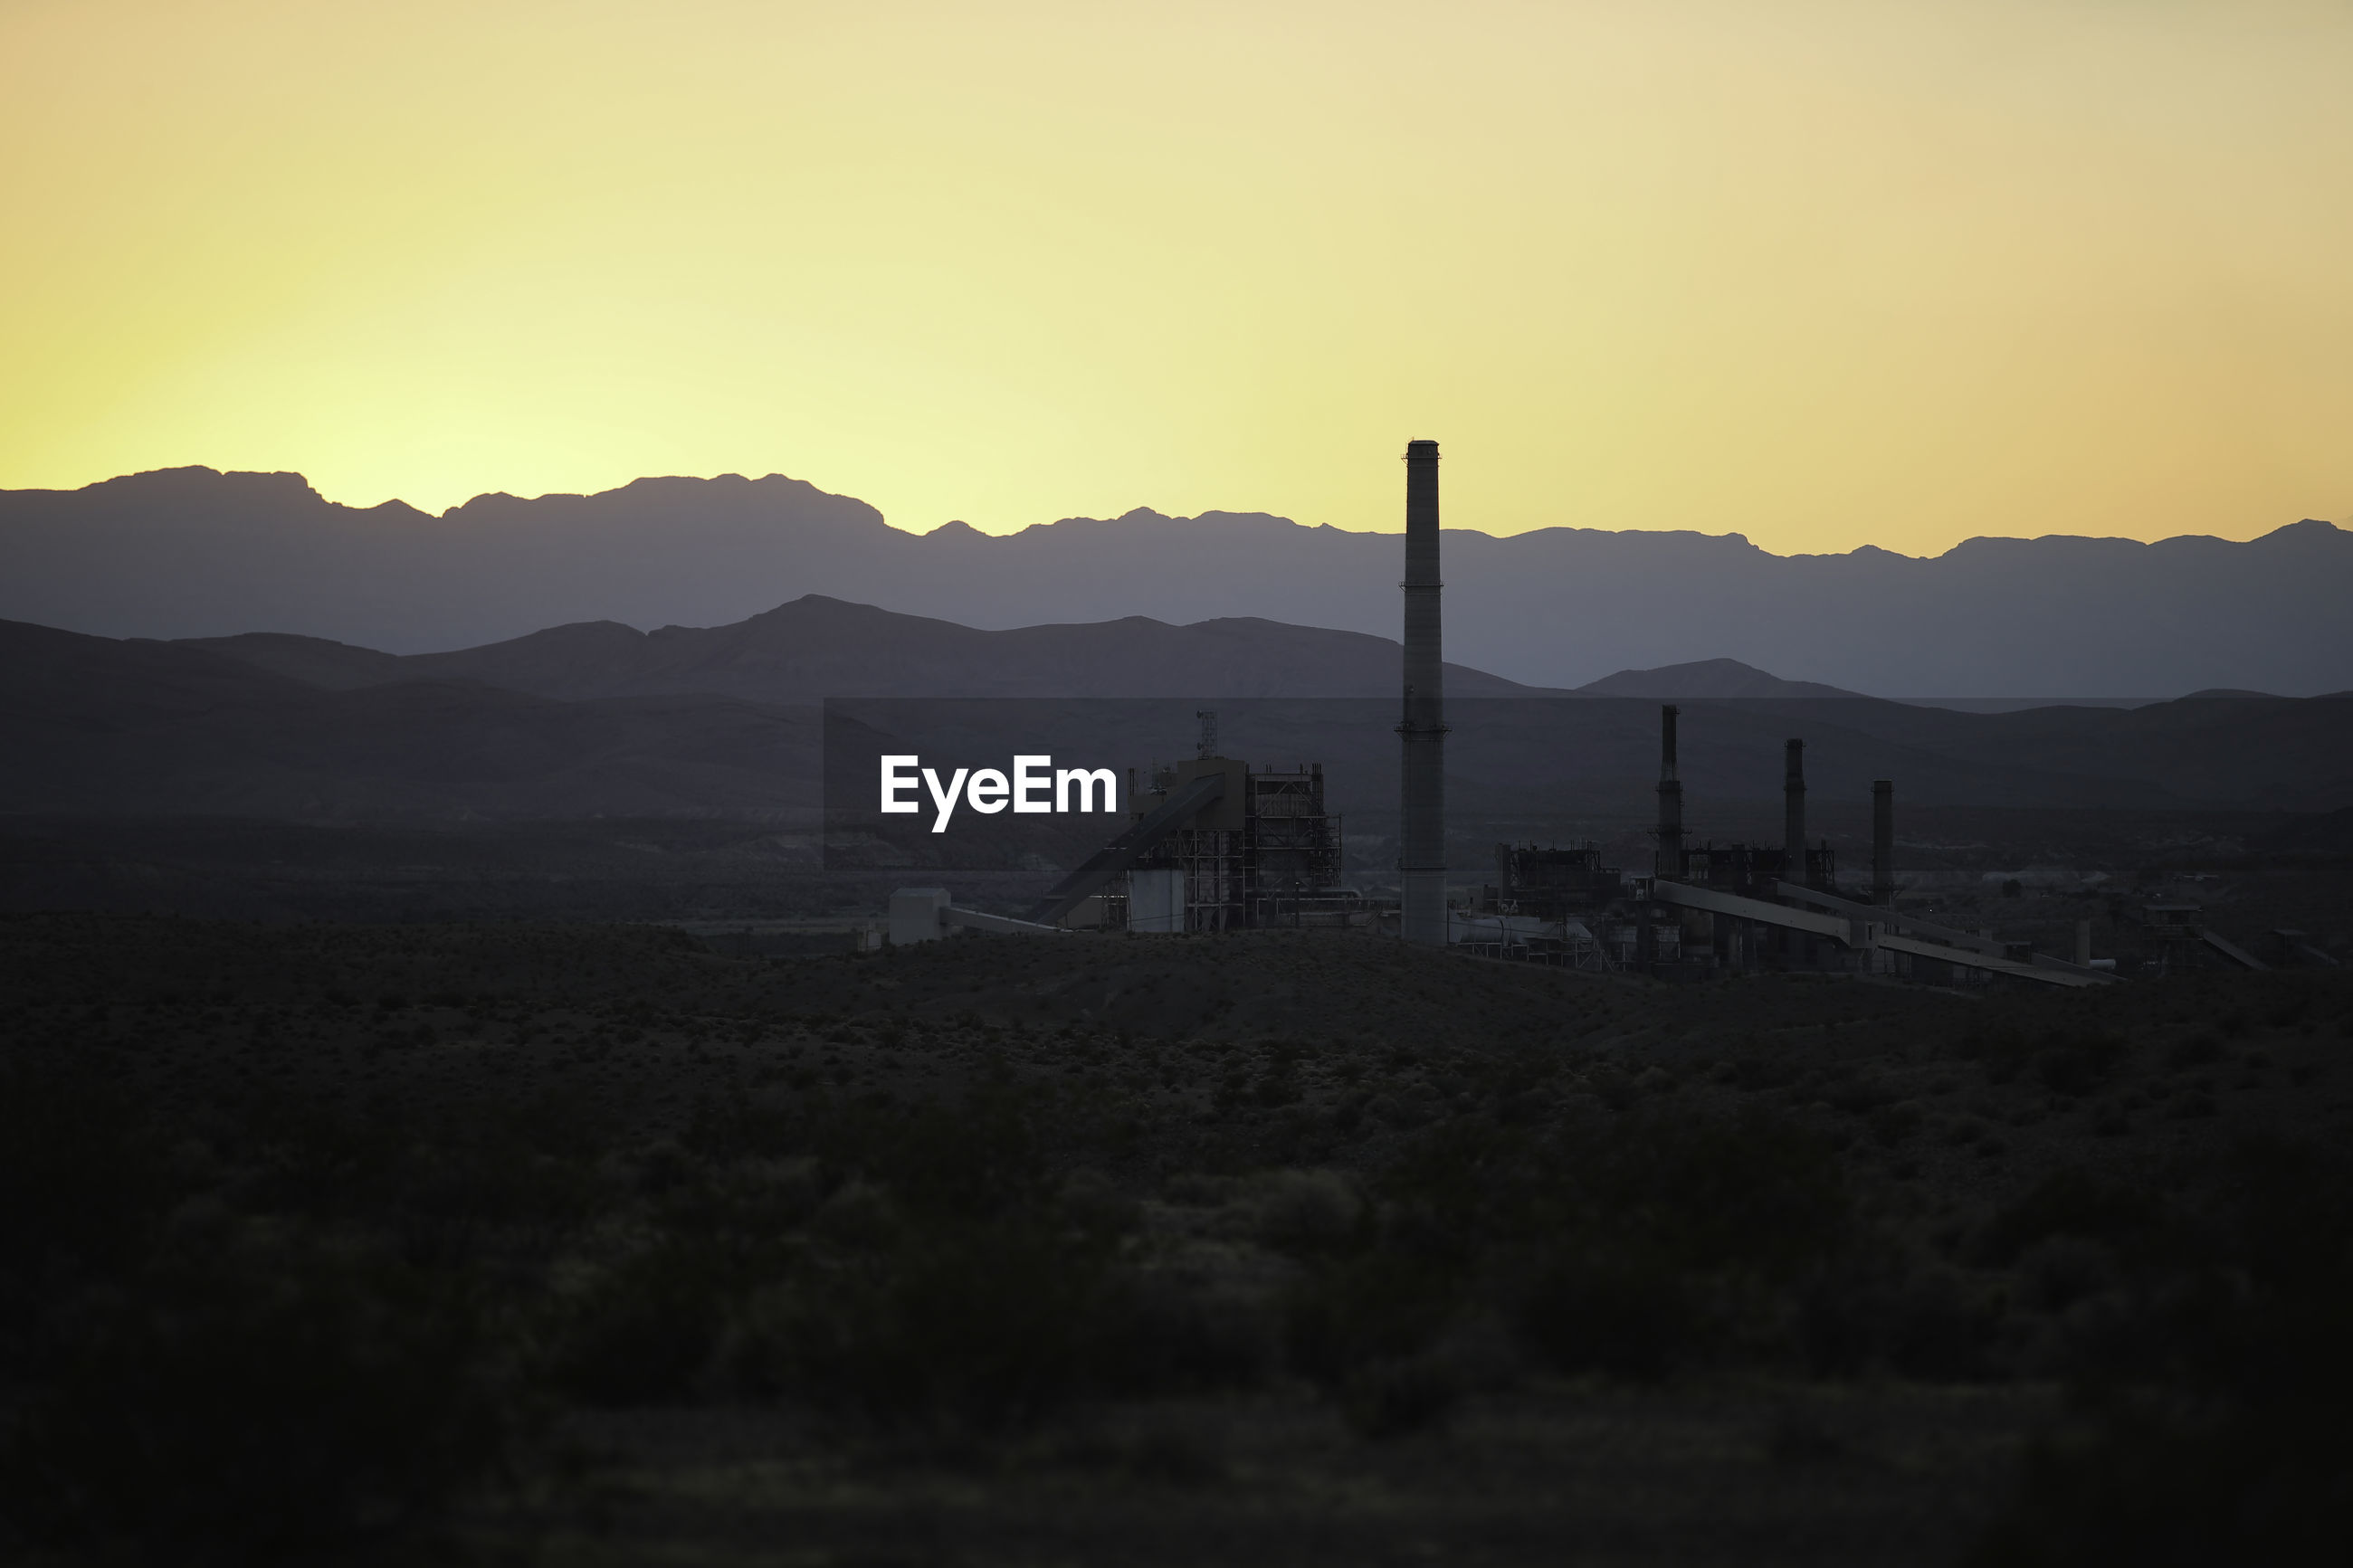 Sunset over a mountain and factory near the border of arizona.